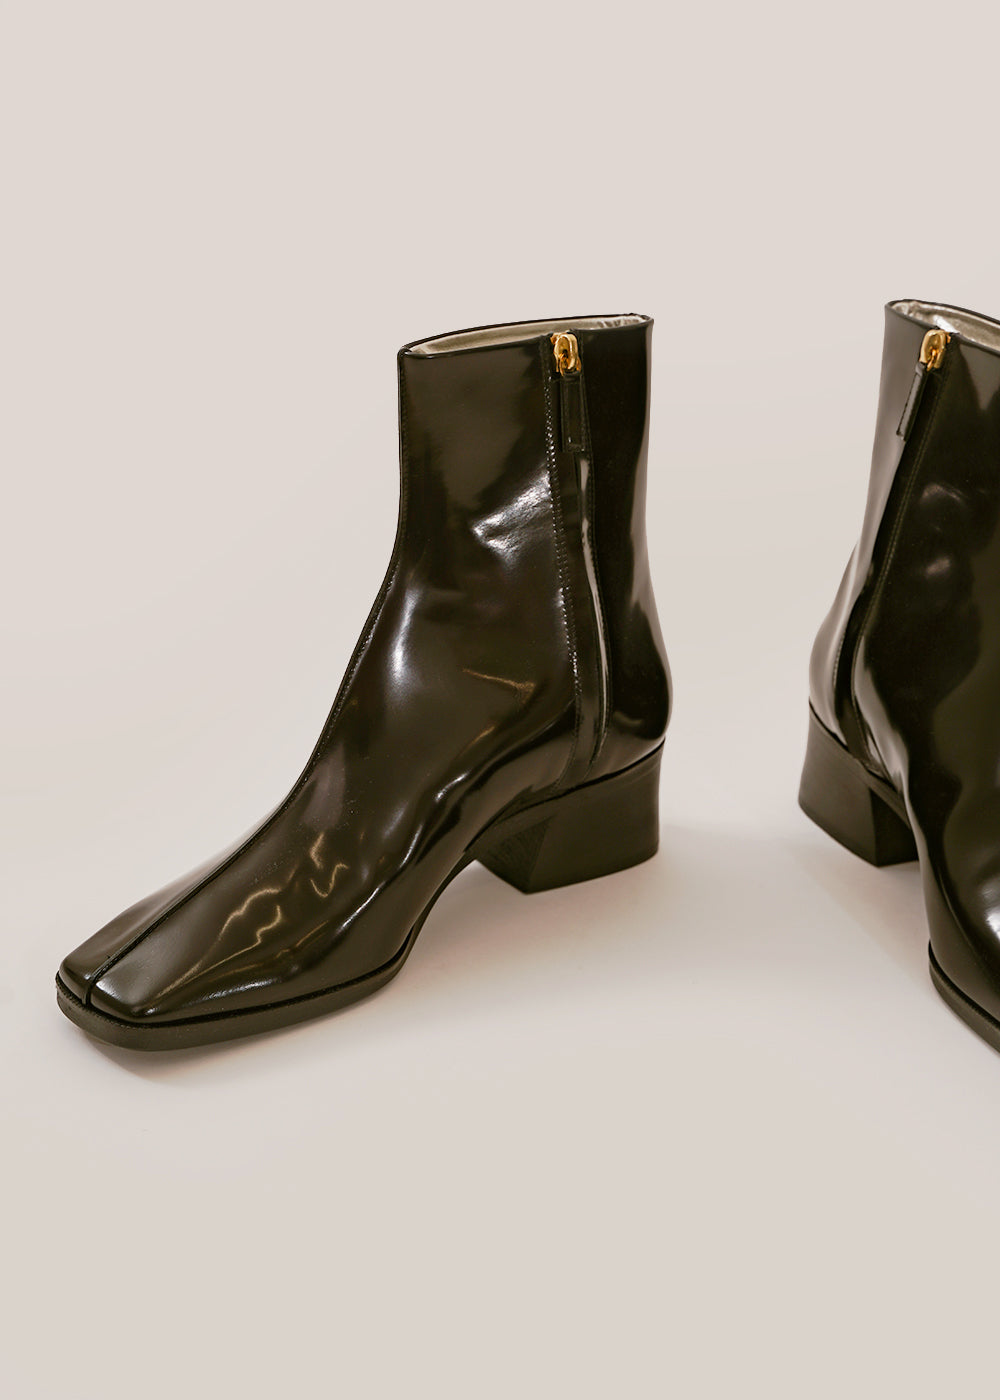 Suzanne Rae Black Welt Sole Boot — Shop sustainable fashion and slow fashion at New Classics Studios